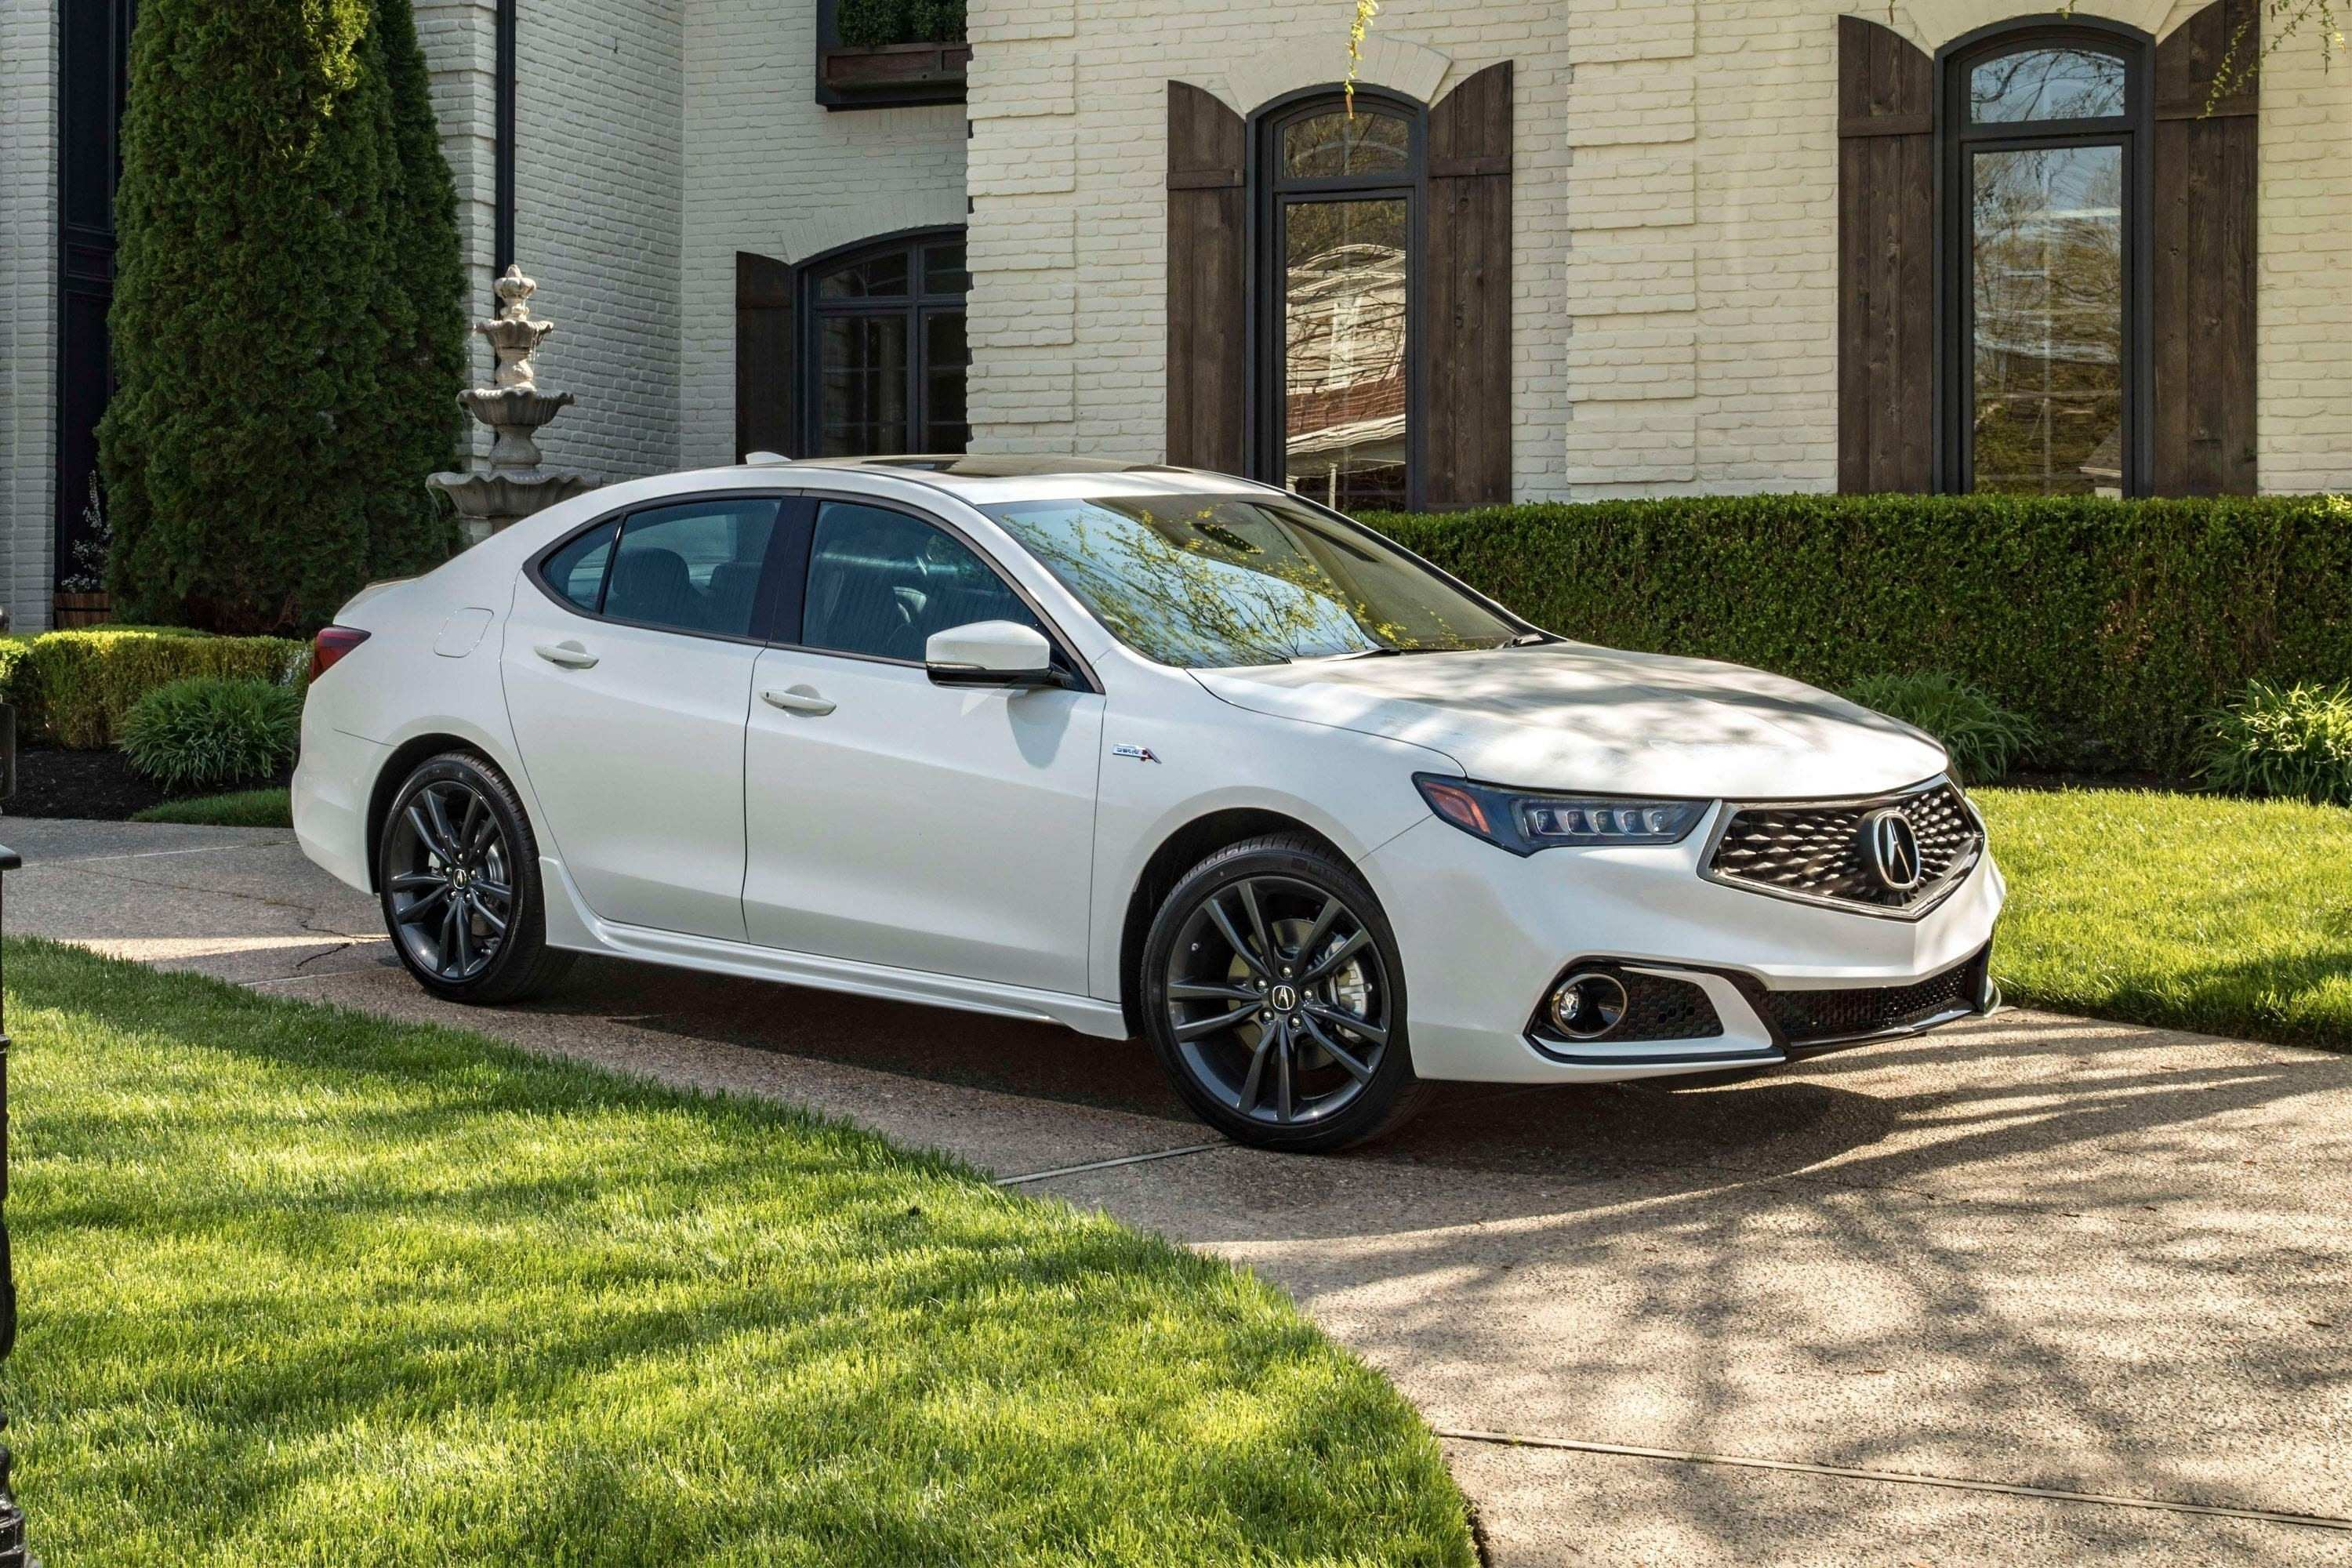 31 New 2020 Acura Tlx Release Date Specs And Review